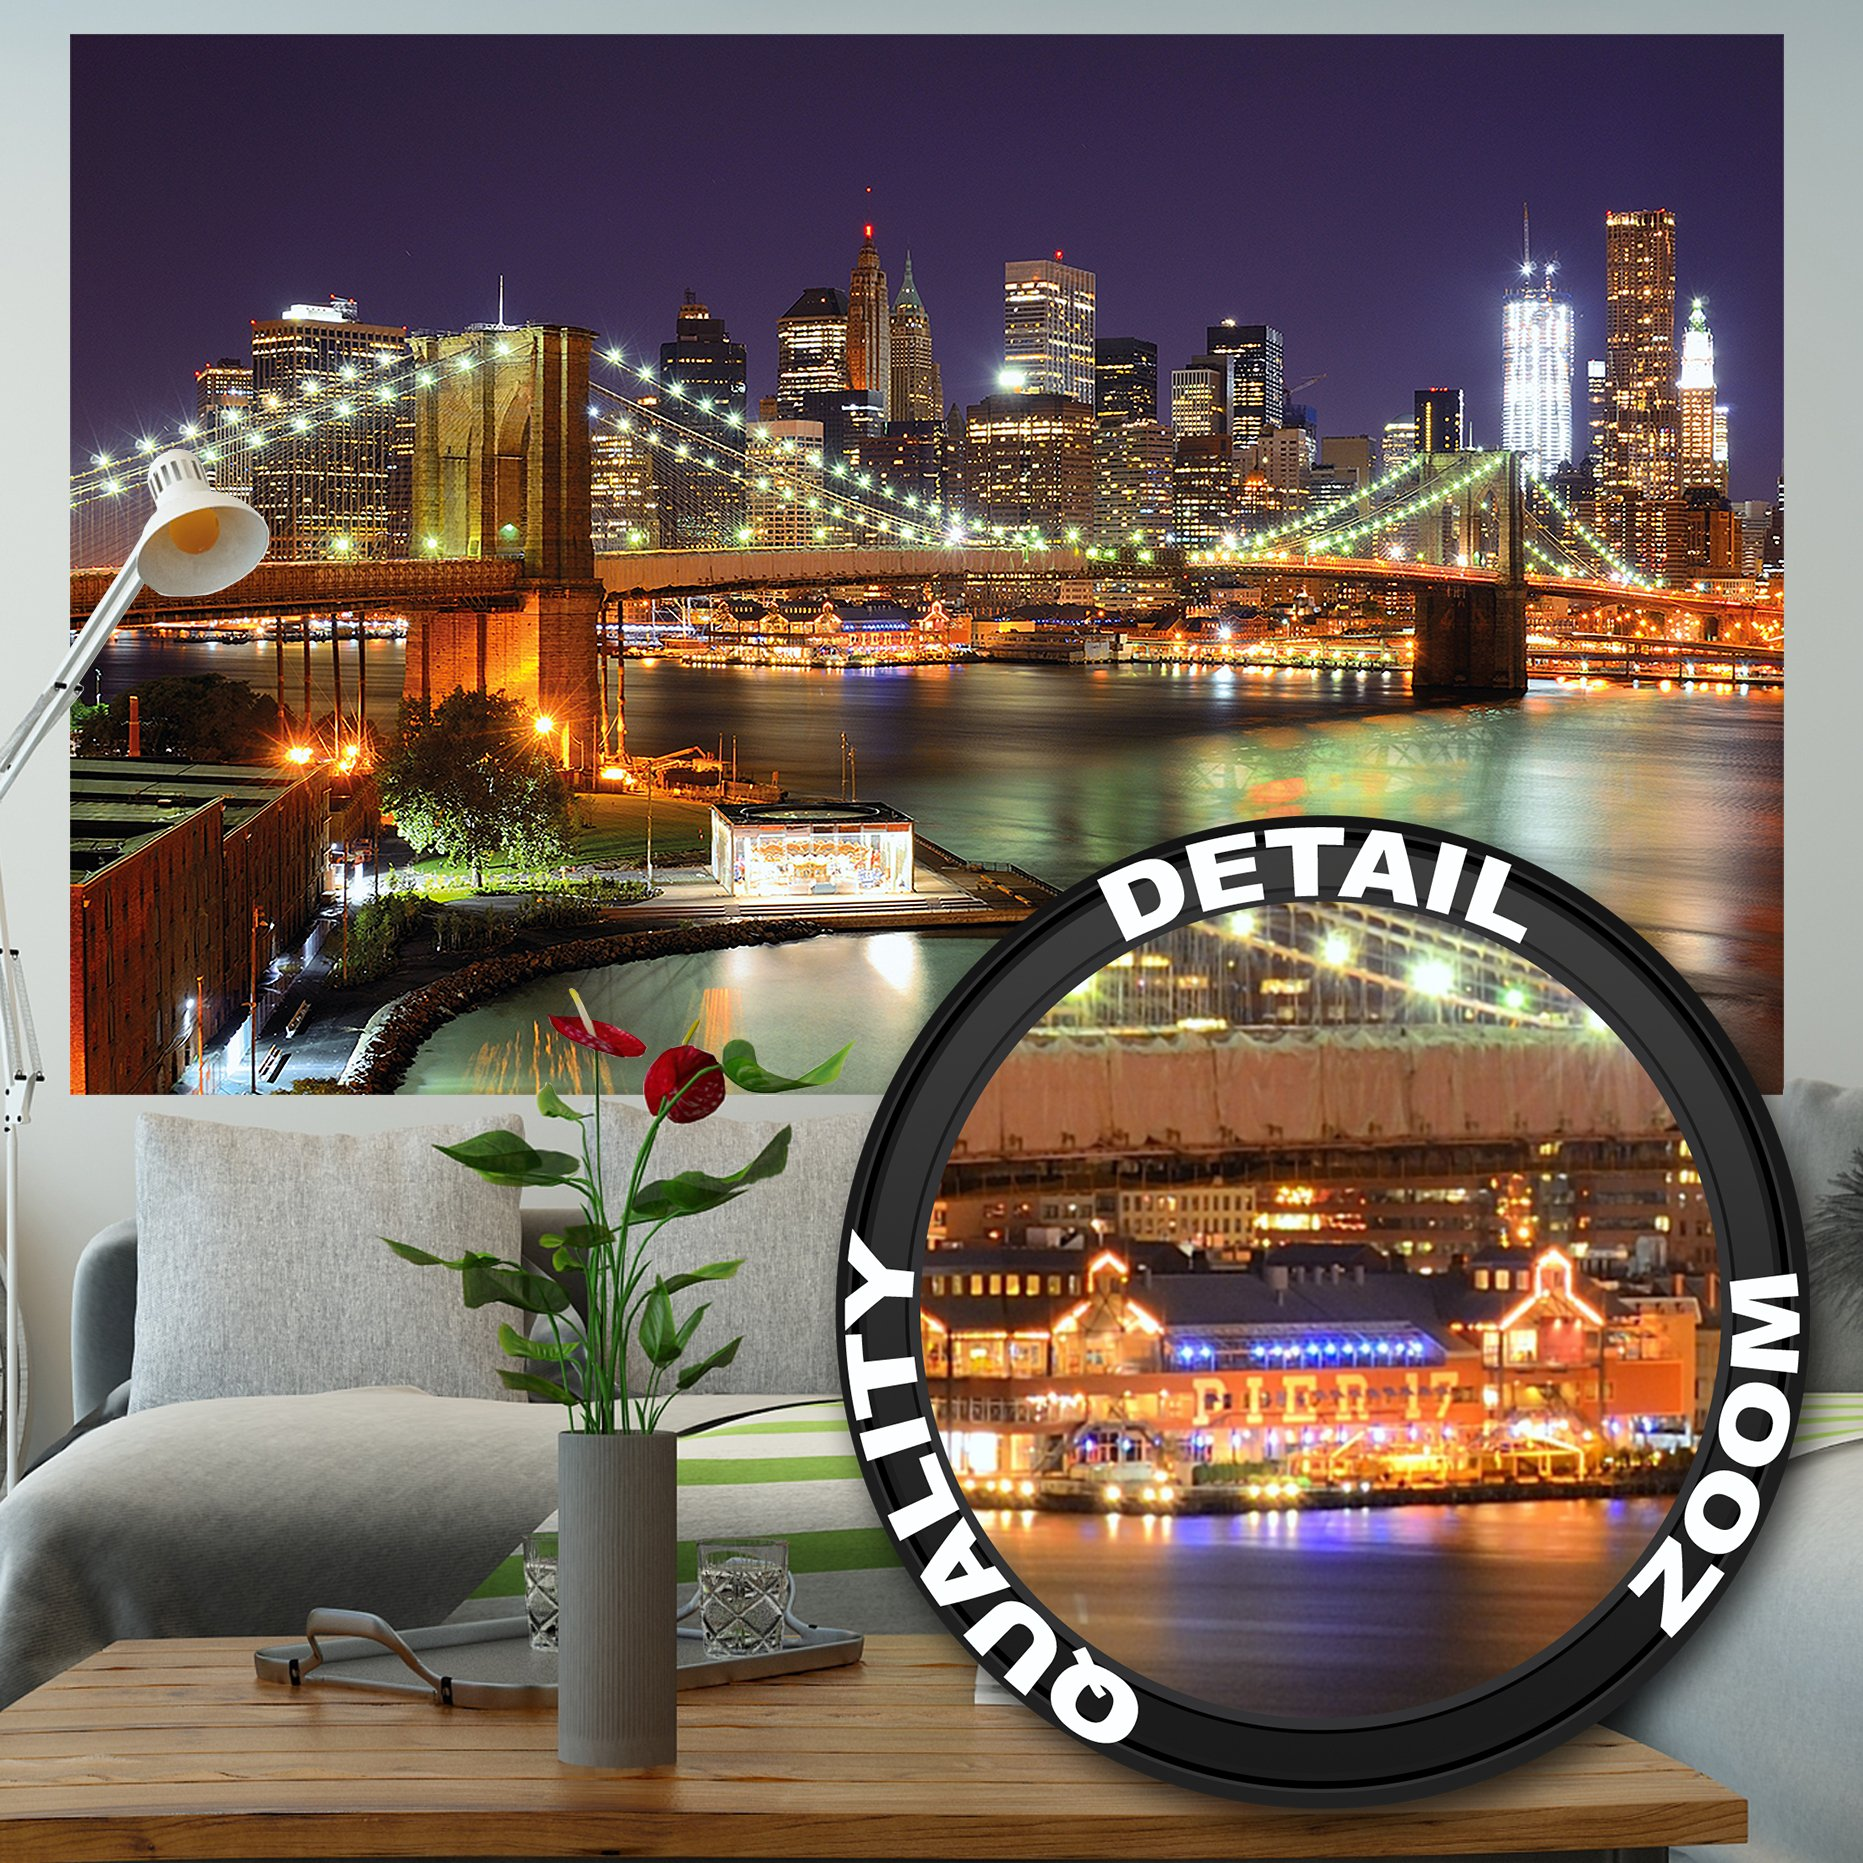 Wallpaper New York Mural Decoration Brooklyn Bridge at Night Glowing Skyscraper Skyline Wall Street USA Decoration I paperhanging Wallpaper poster wall decor by GREAT ART (82.7x55 Inch)